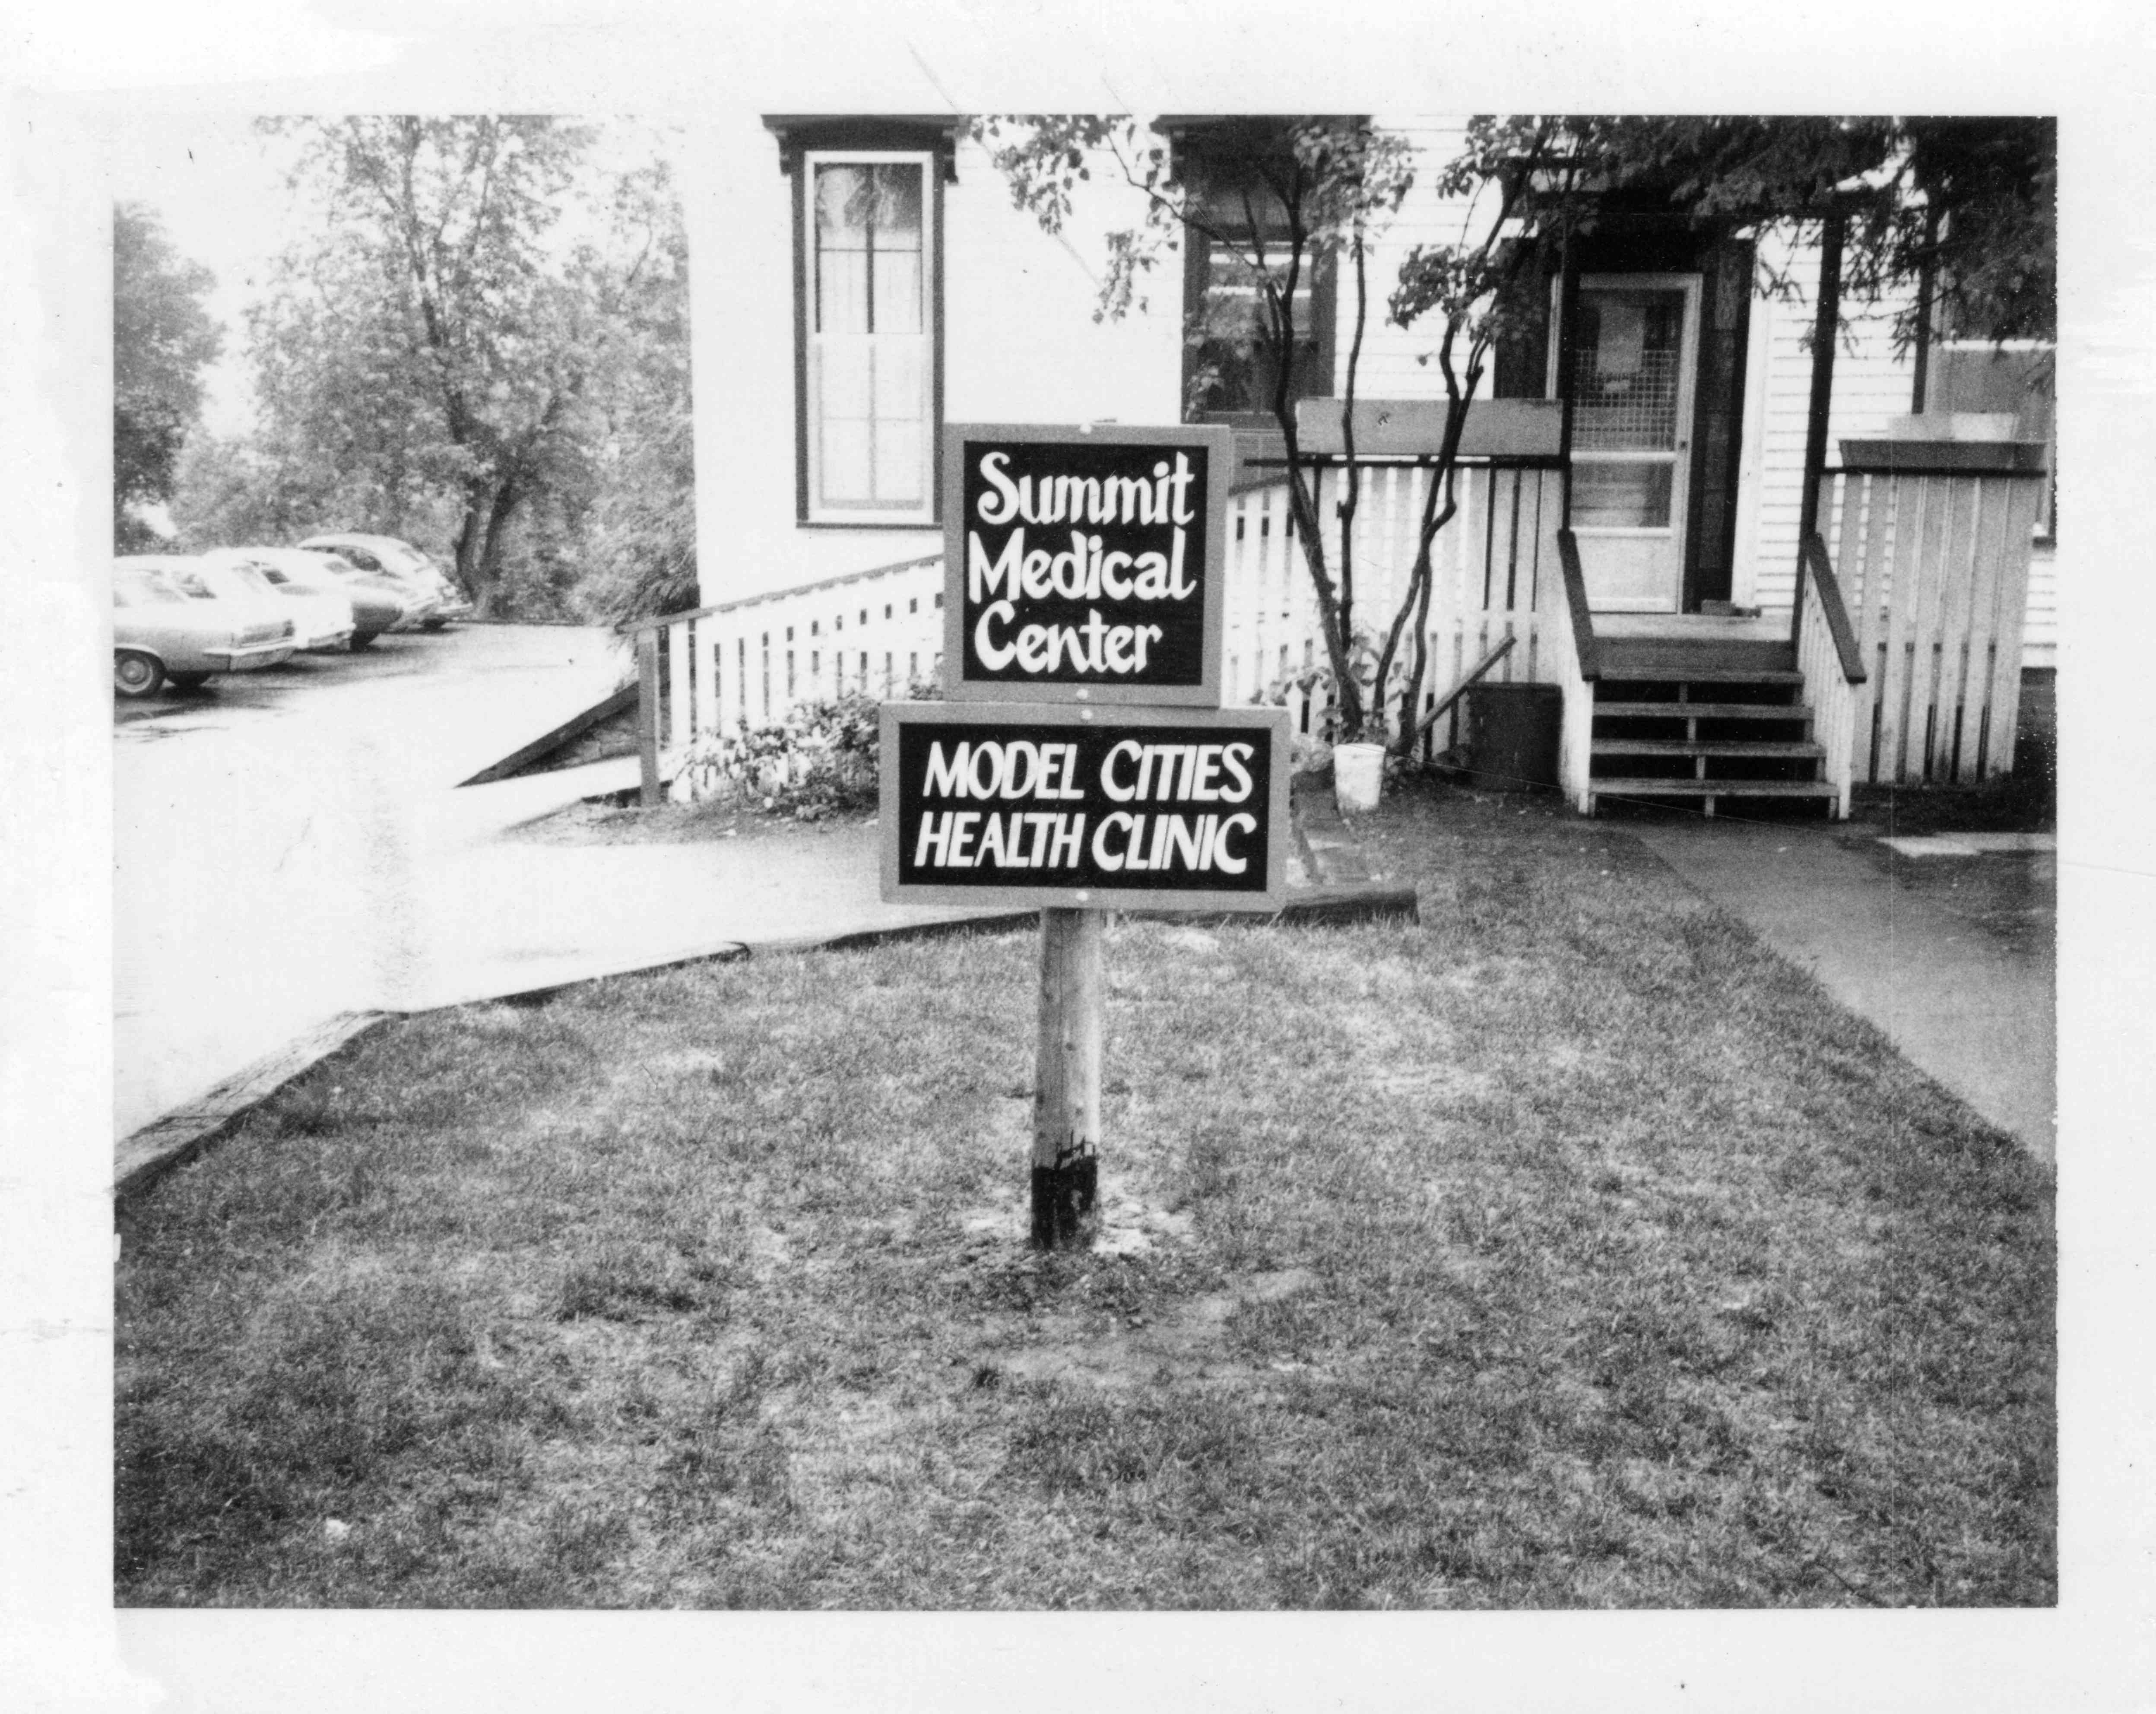 Model Cities Health Clinic, 1972 image